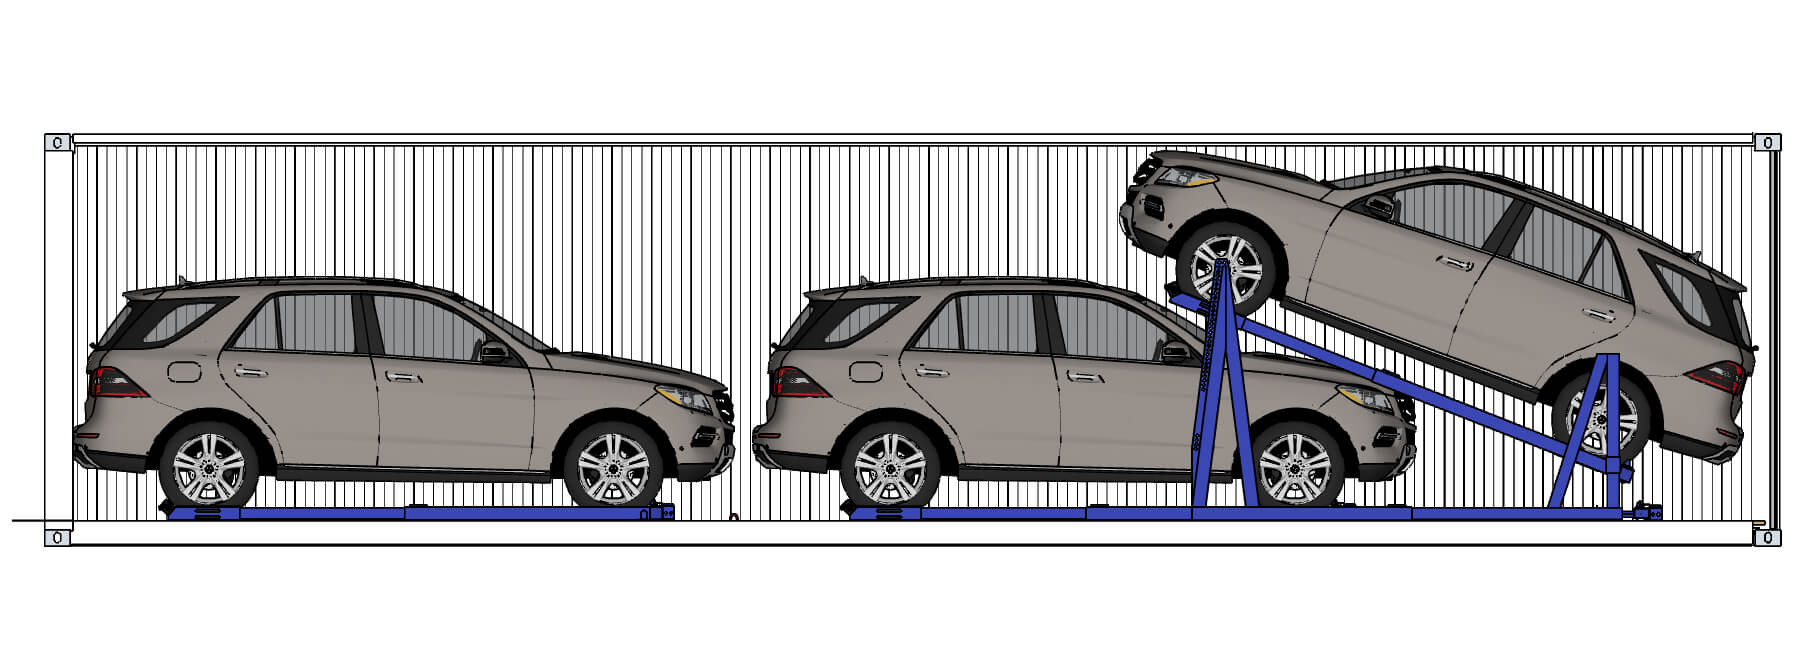 EL-RAK - Vehicle Racking Systems, Car Storage Solutions – Trans-Rak